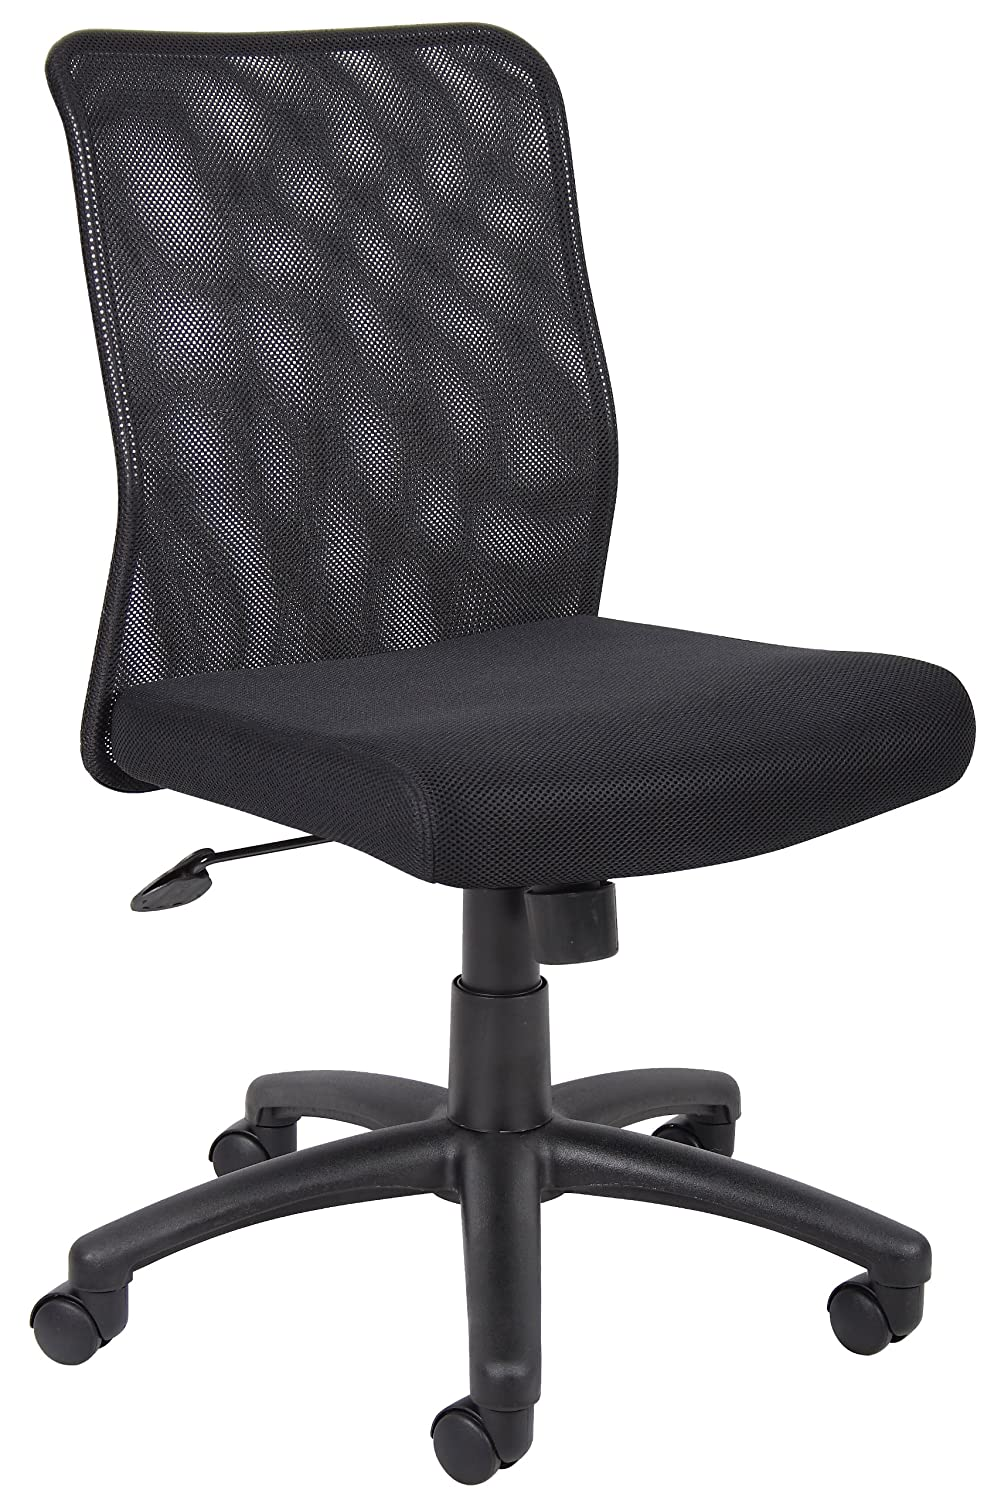 Boss Office Products B6105 Budget Mesh Task Chair without Arms in Black Norstar Office DBA Boss